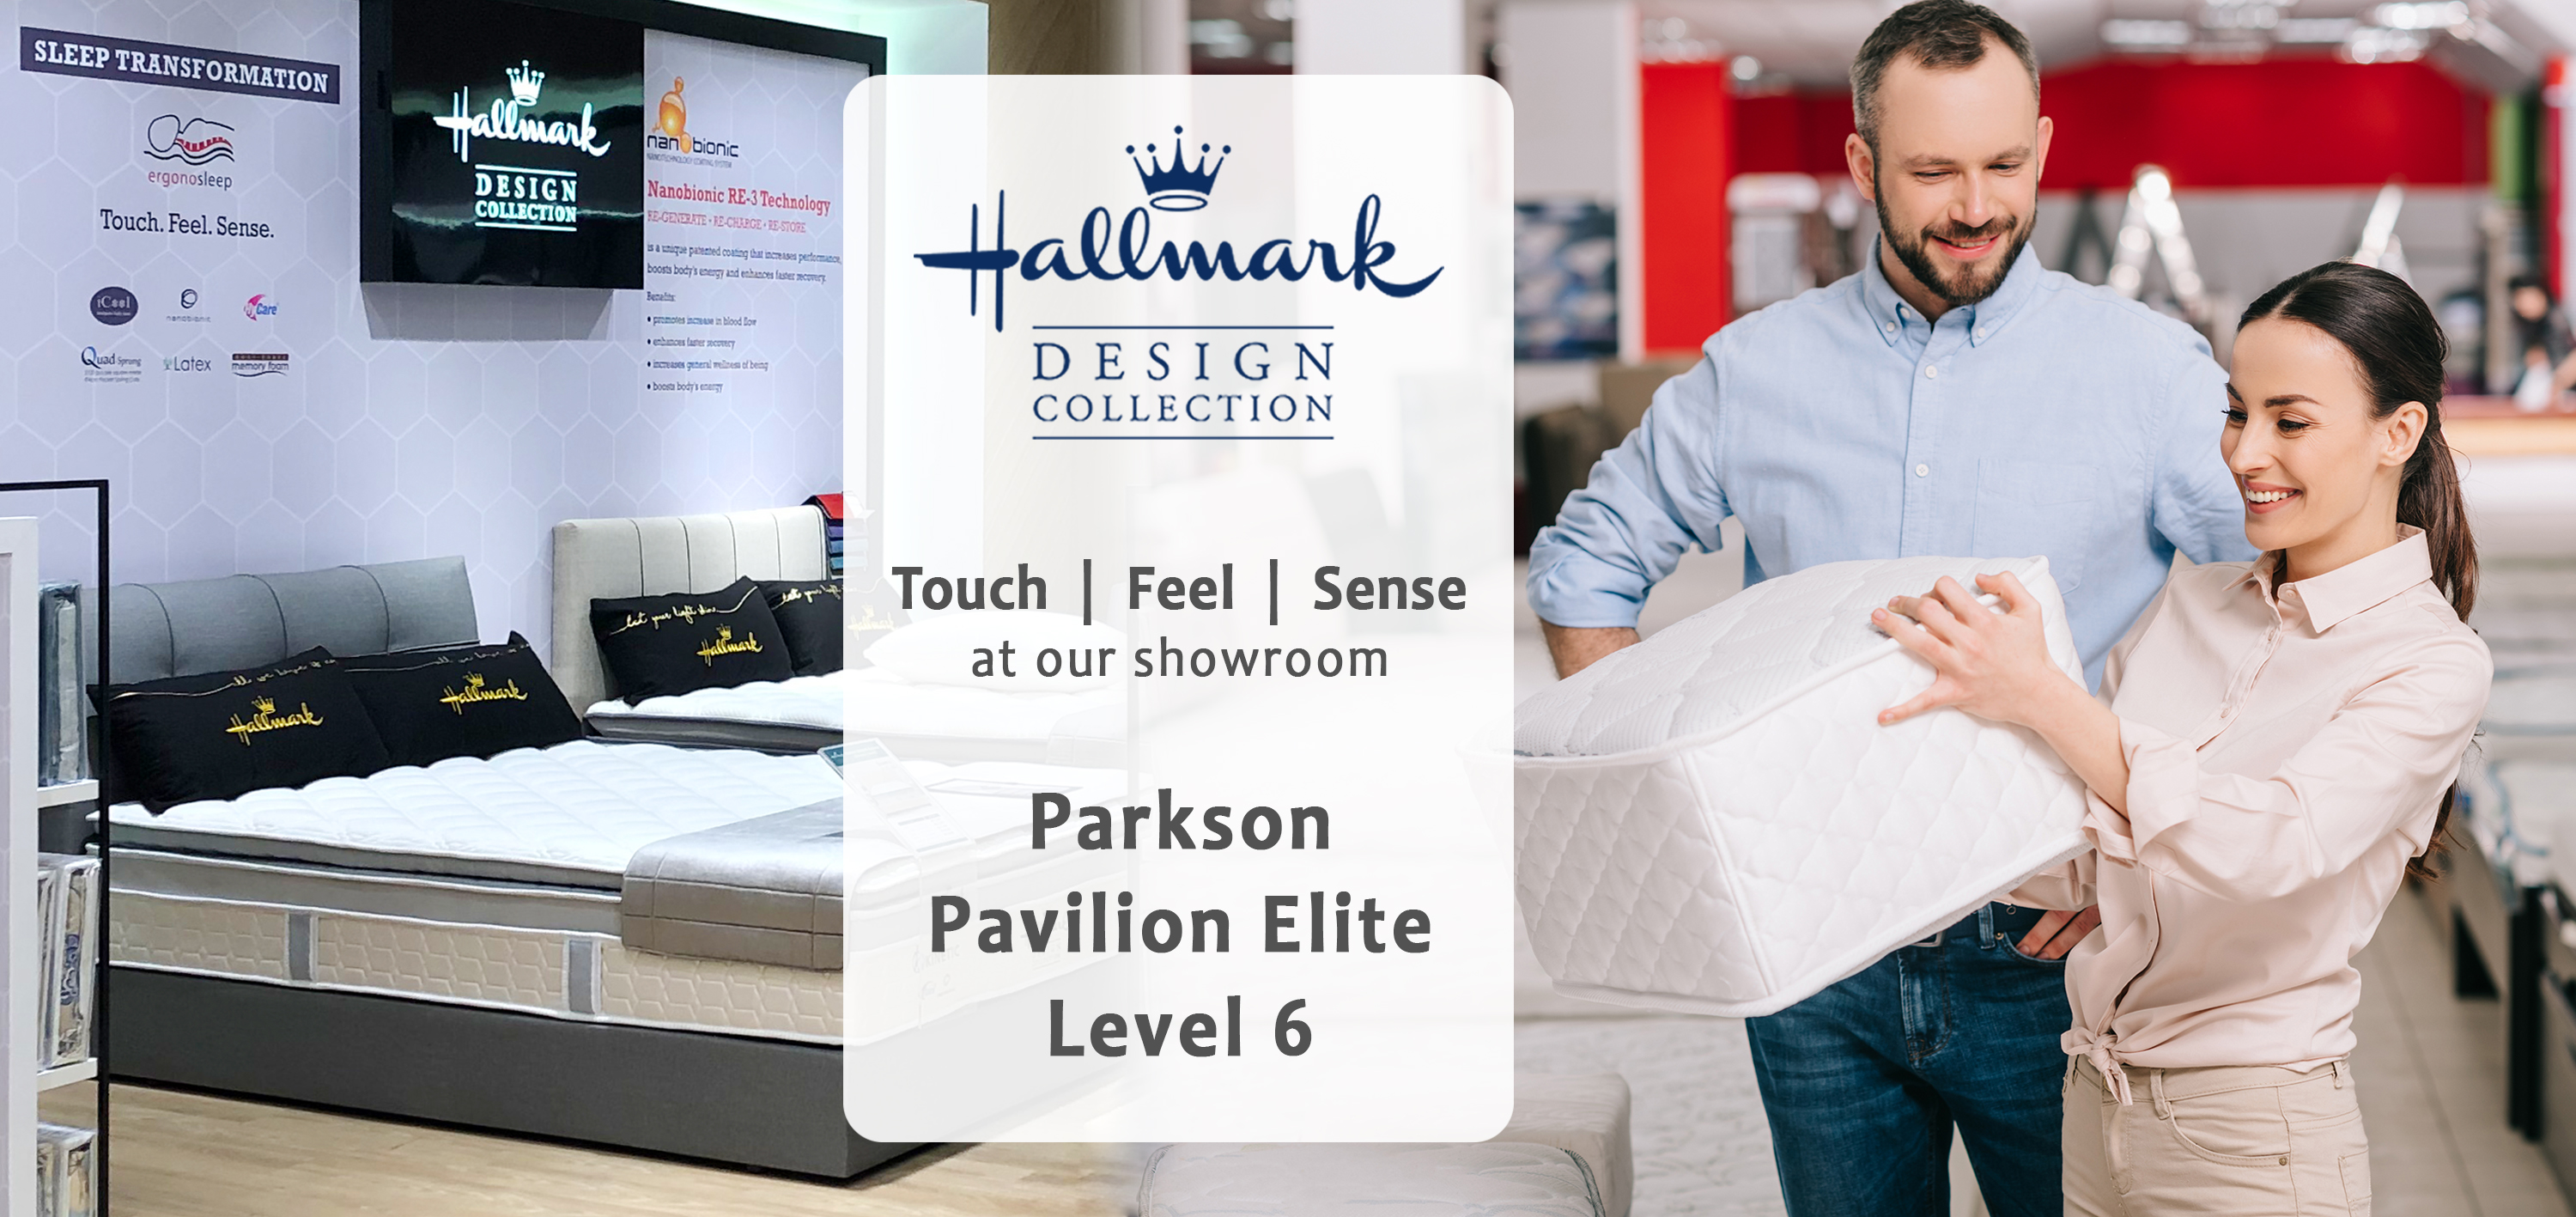 Visit Hallmark Mattress Showroom at Parkson Pavilion Elite level 6